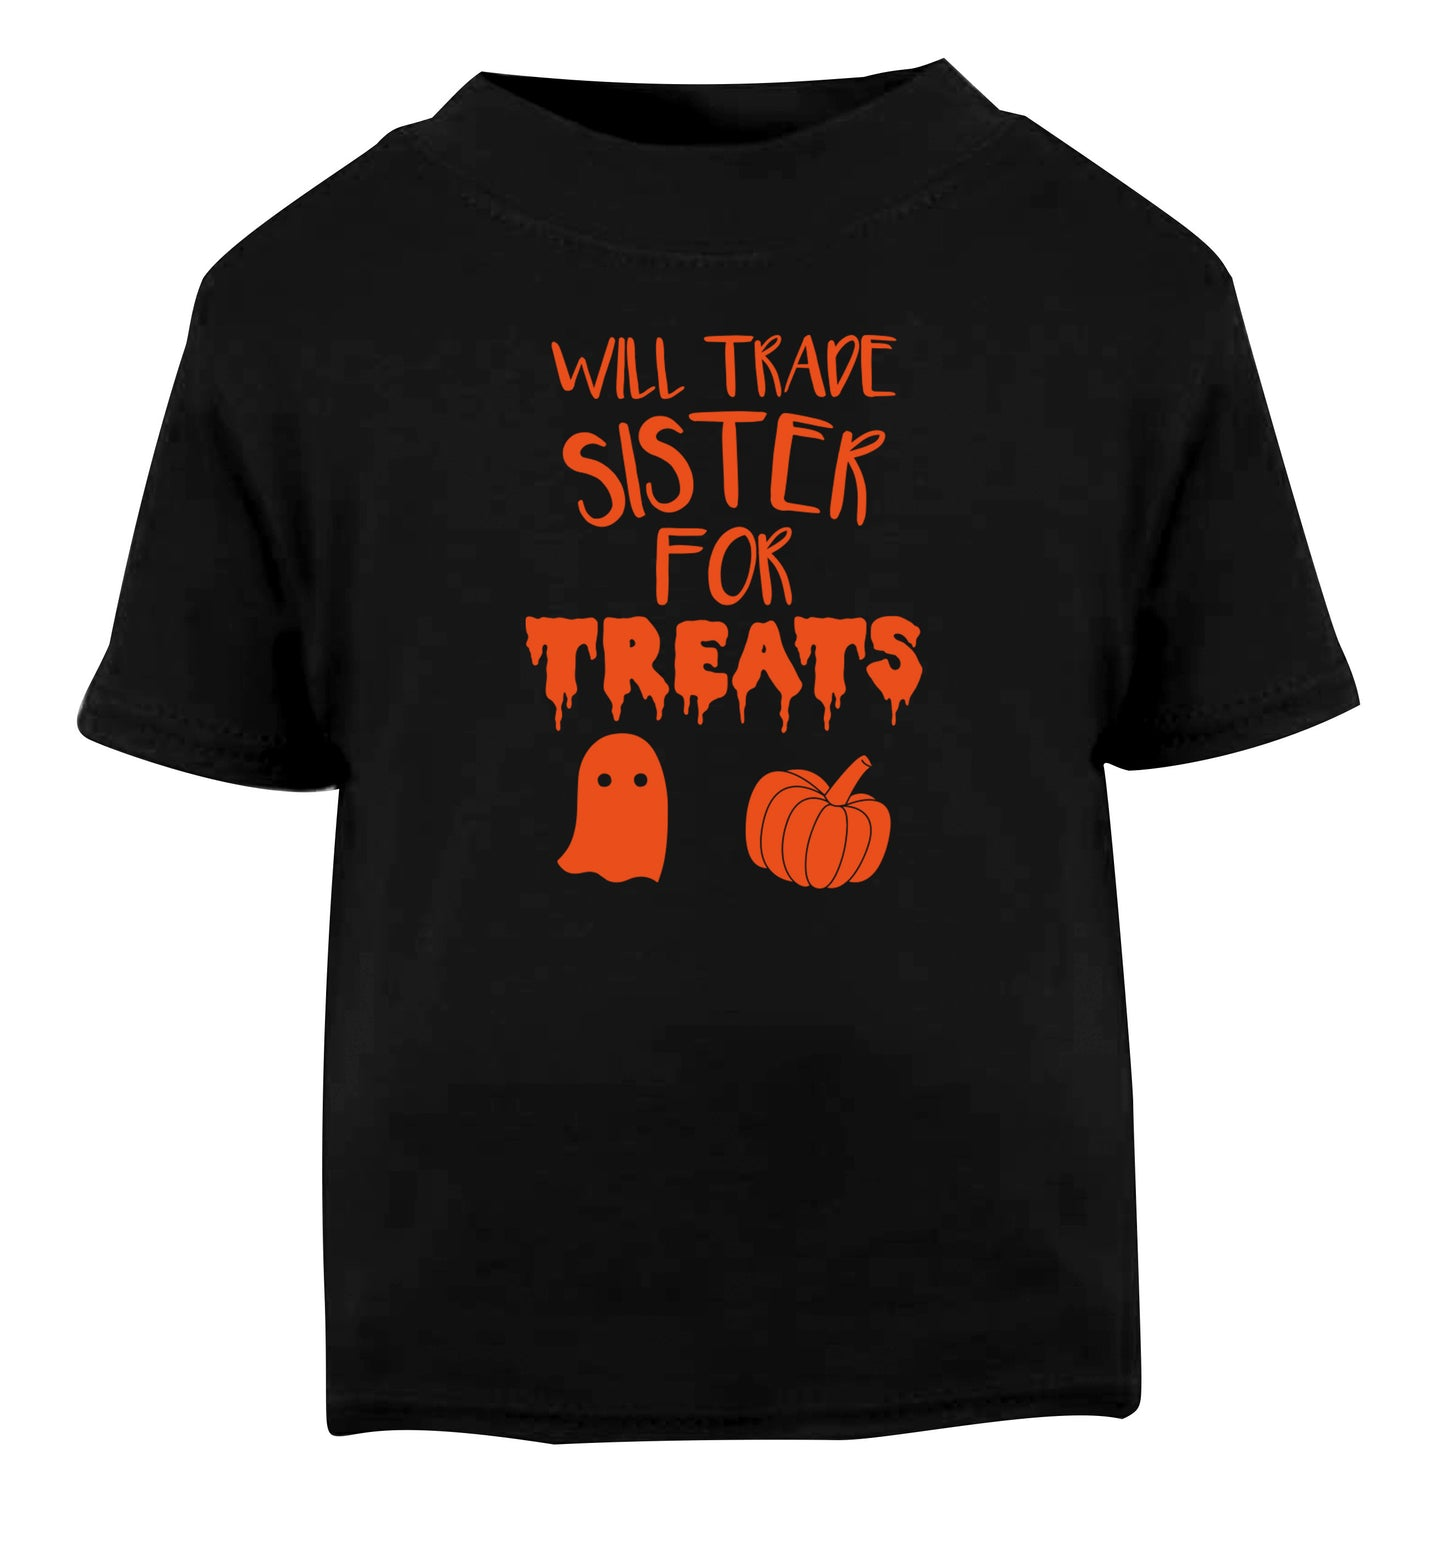 Will trade sister for treats Black Baby Toddler Tshirt 2 years